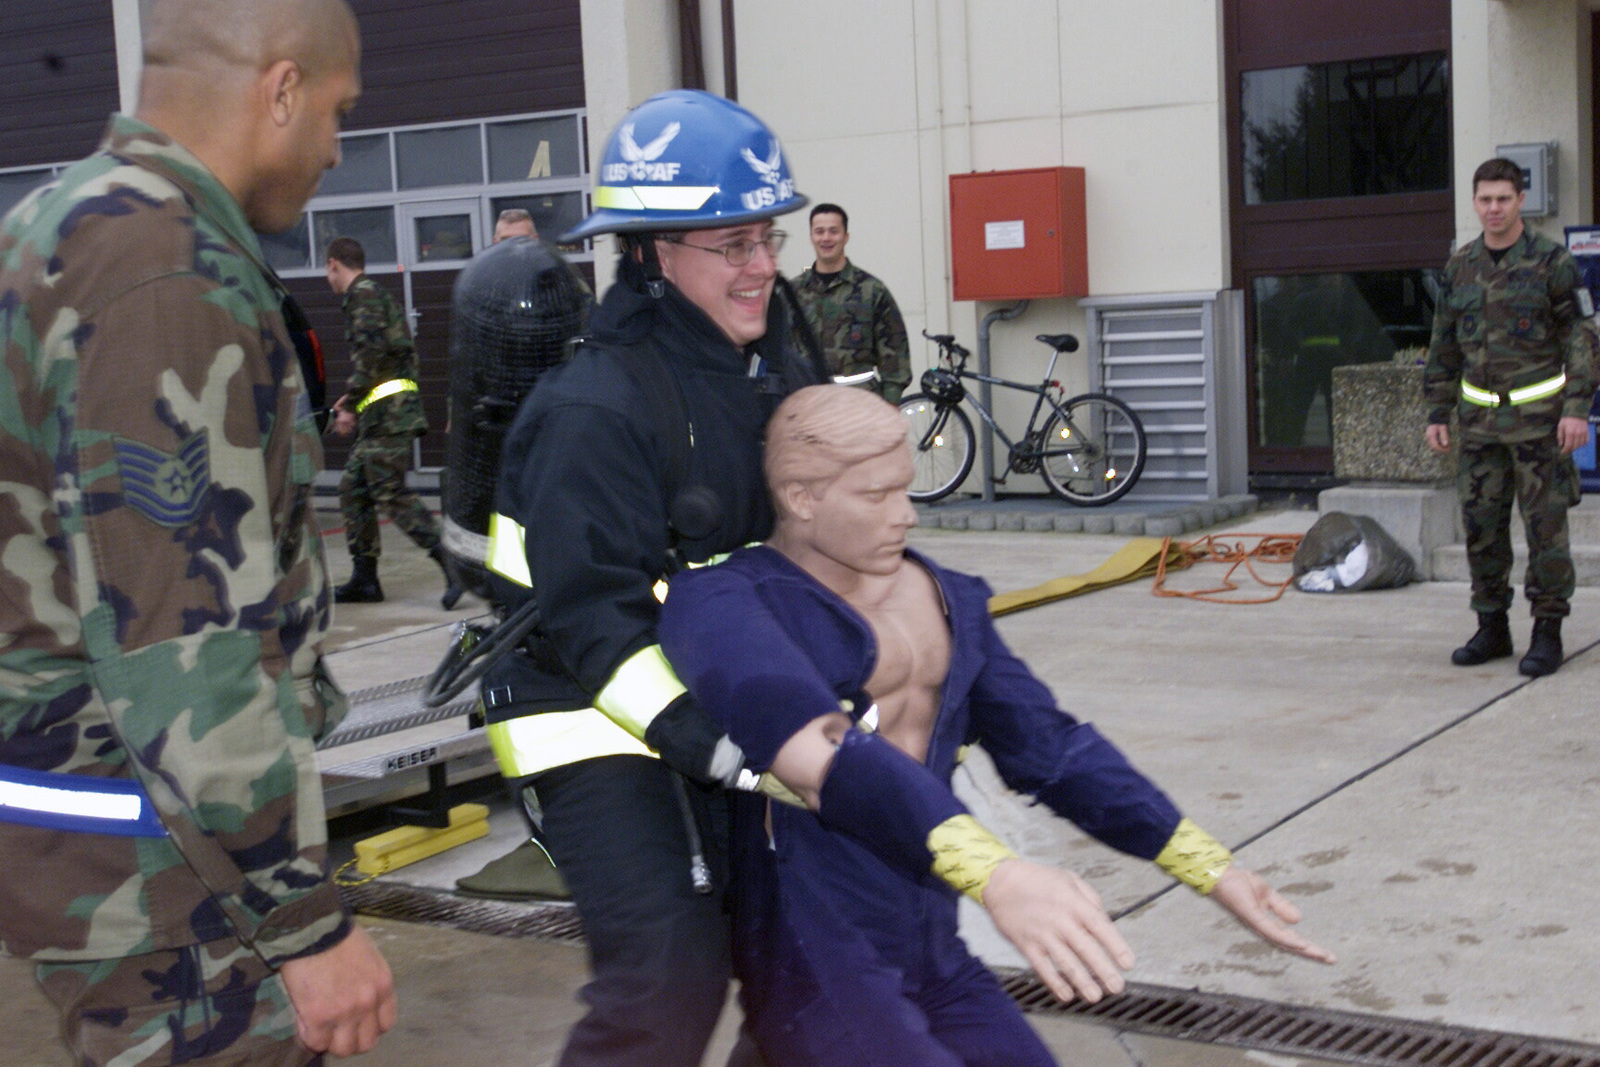 US Air Force (USAF) Technical Sergeant (TSGT) George Deshields, 52nd Civil Engineering Squadron (CES), watches as Restless Heart band member David Innis, in full fire suit, drags a practice dummy during a firefighter exercise at Spangdahlem Air Base (AB), Germany. Country music group Restless Heart and The Jamie O'Neal Band are top performers in this years Operations Seasoning's Greetings concert at the base